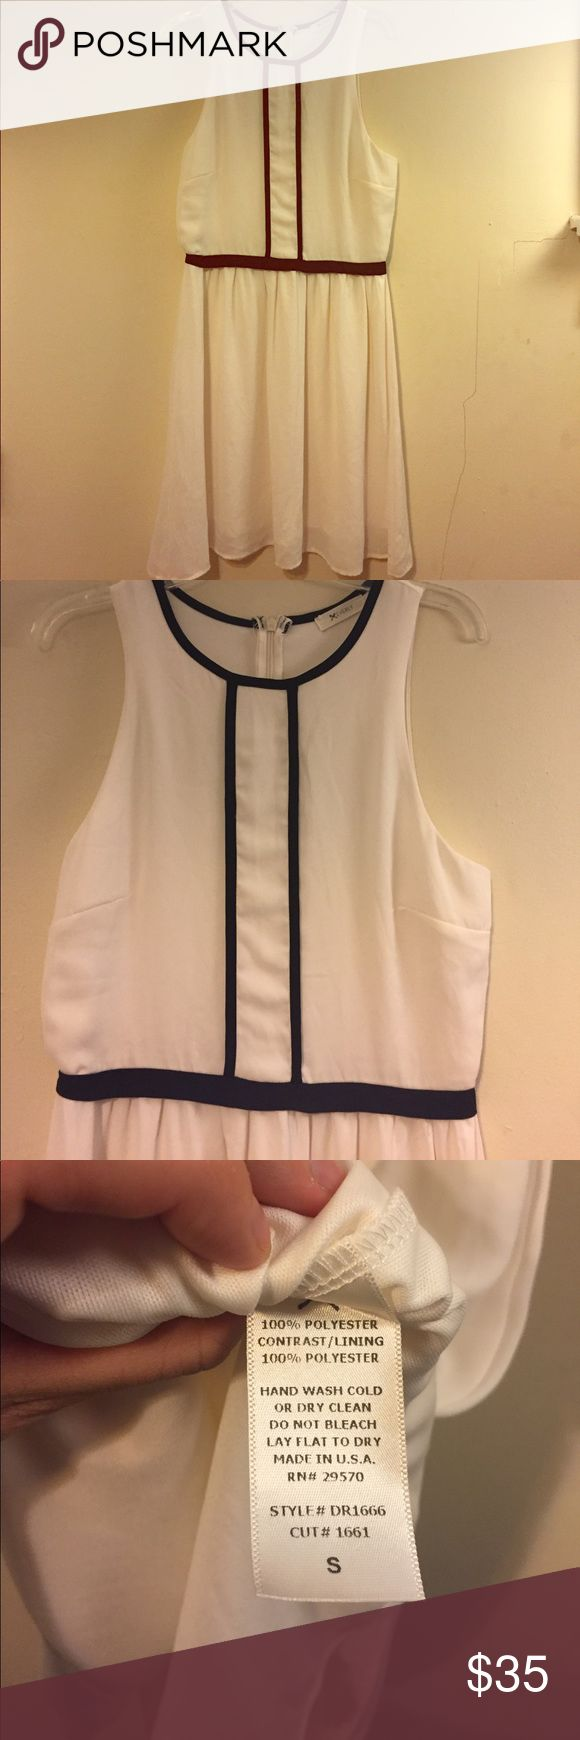 Cream and Black Trim Everly Dress Size Small Cream and Black Trim Everly Dress Size Small. In great condition. Super cute for all different occasions. Everly Dresses